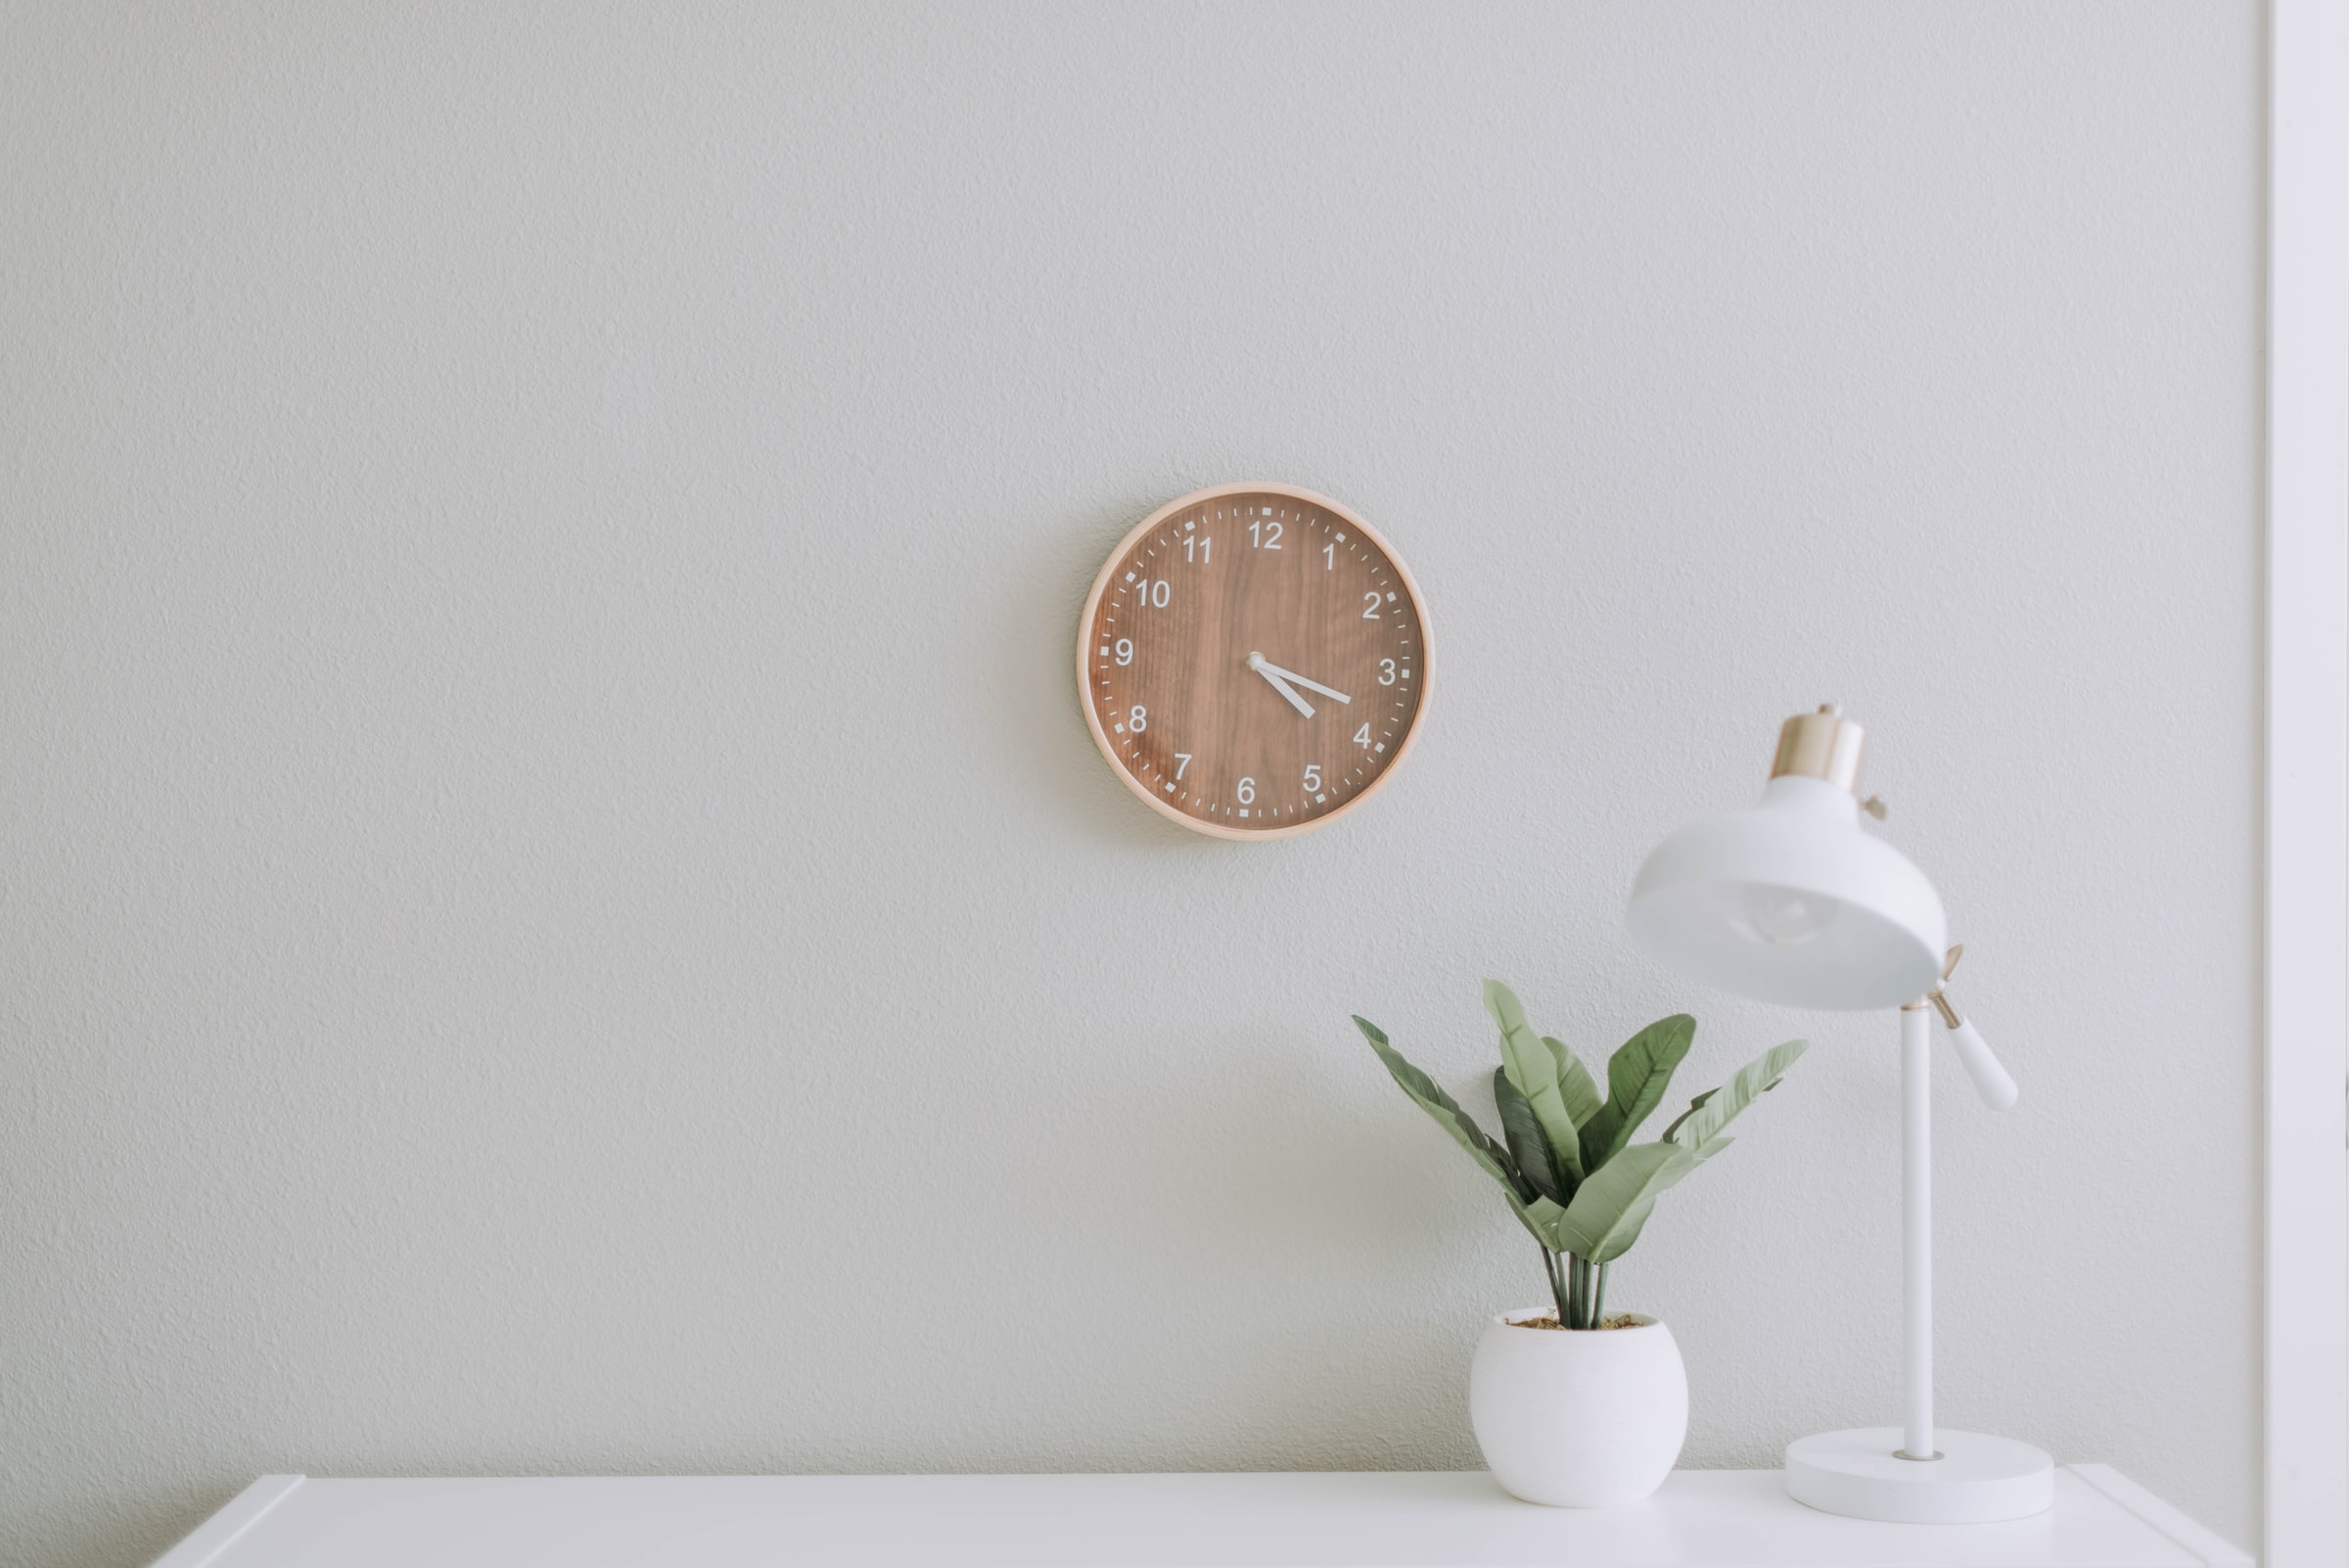 Best Practices for Effective Time Management